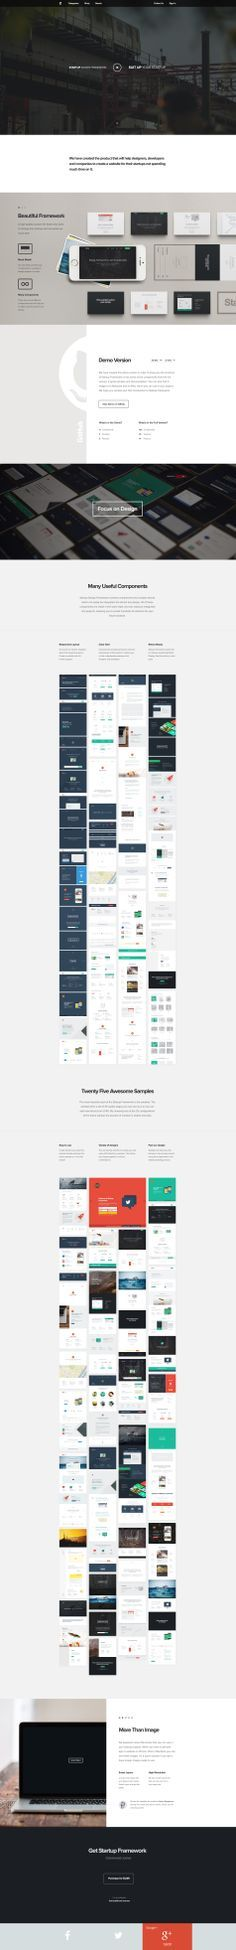 14 best Resources and other helpfull stuff for Webdevs images on - fresh apiary blueprint examples